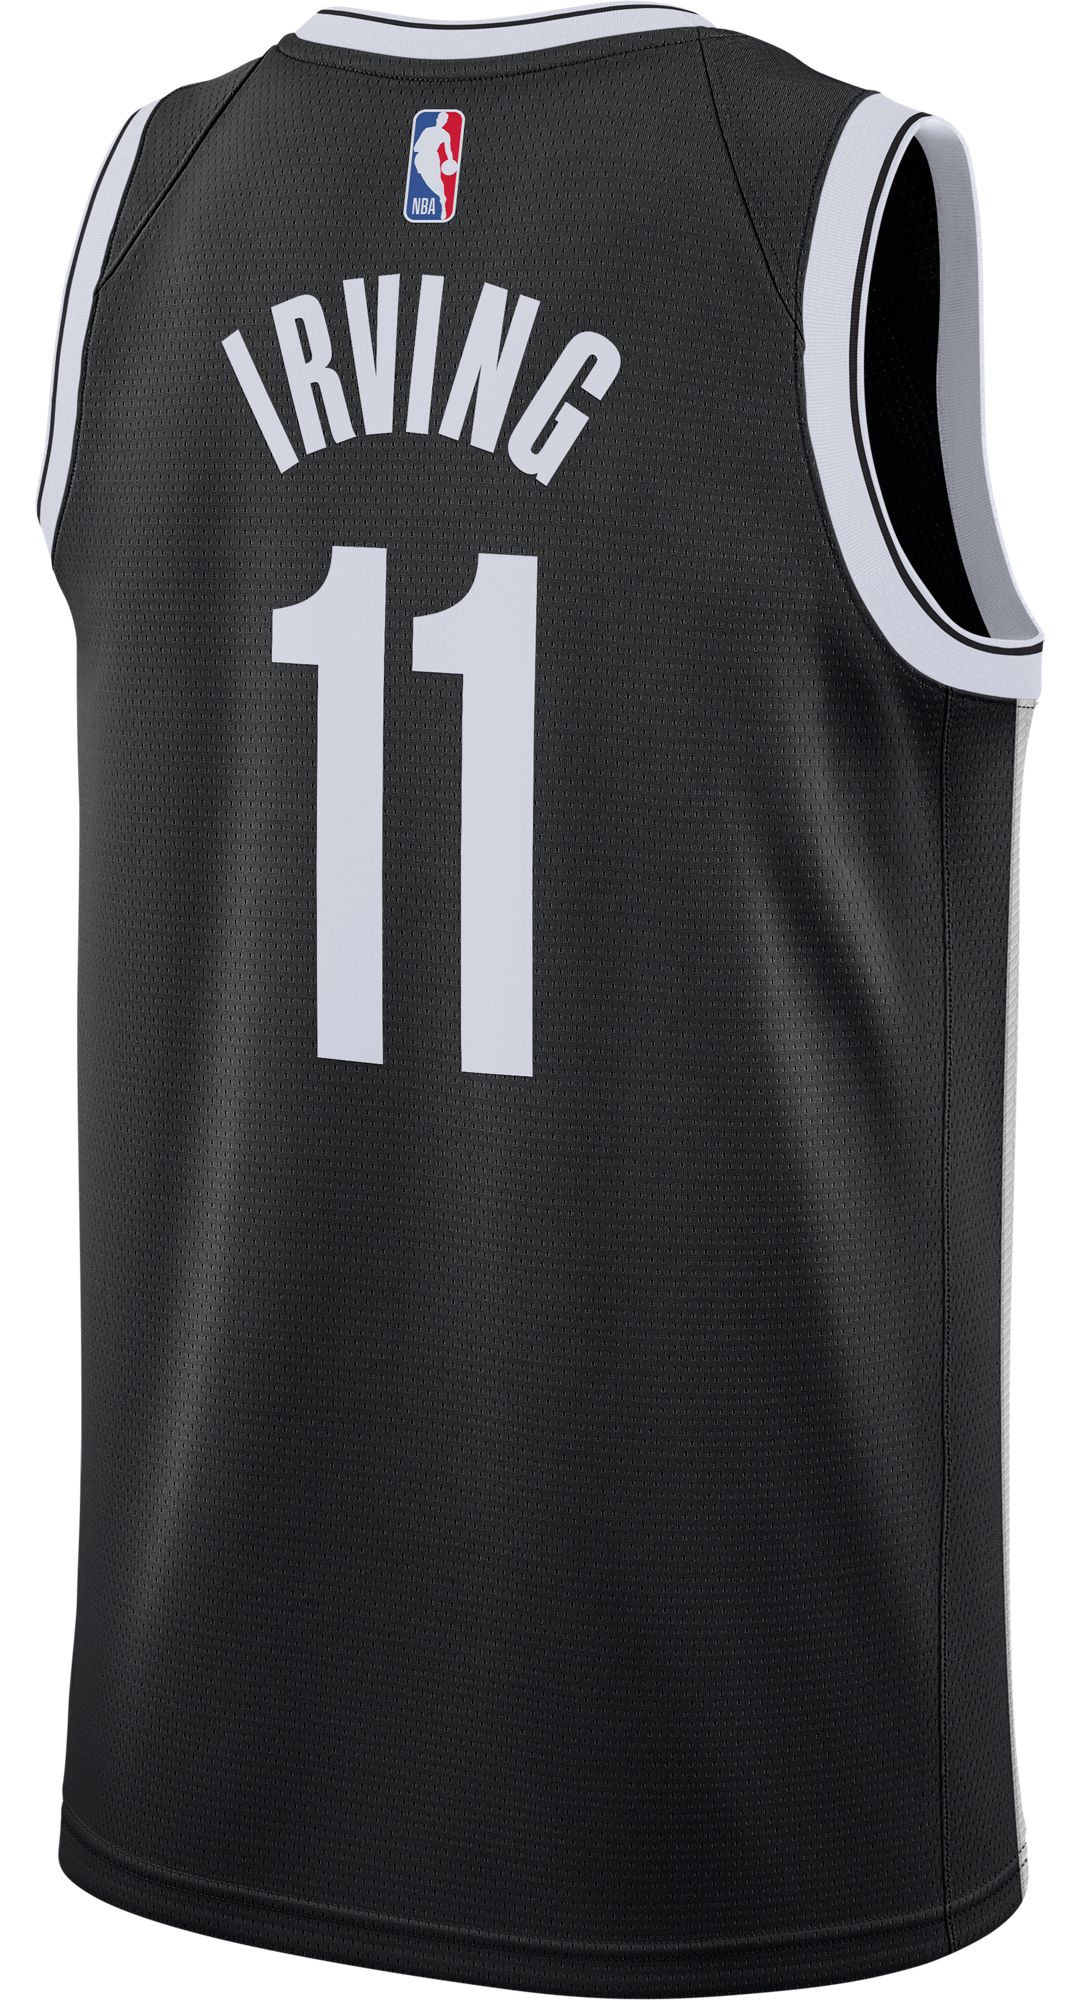 100% authentic 1979d 6e786 Nike Men's Brooklyn Nets Kyrie Irving #11 Black Dri-FIT Swingman Jersey